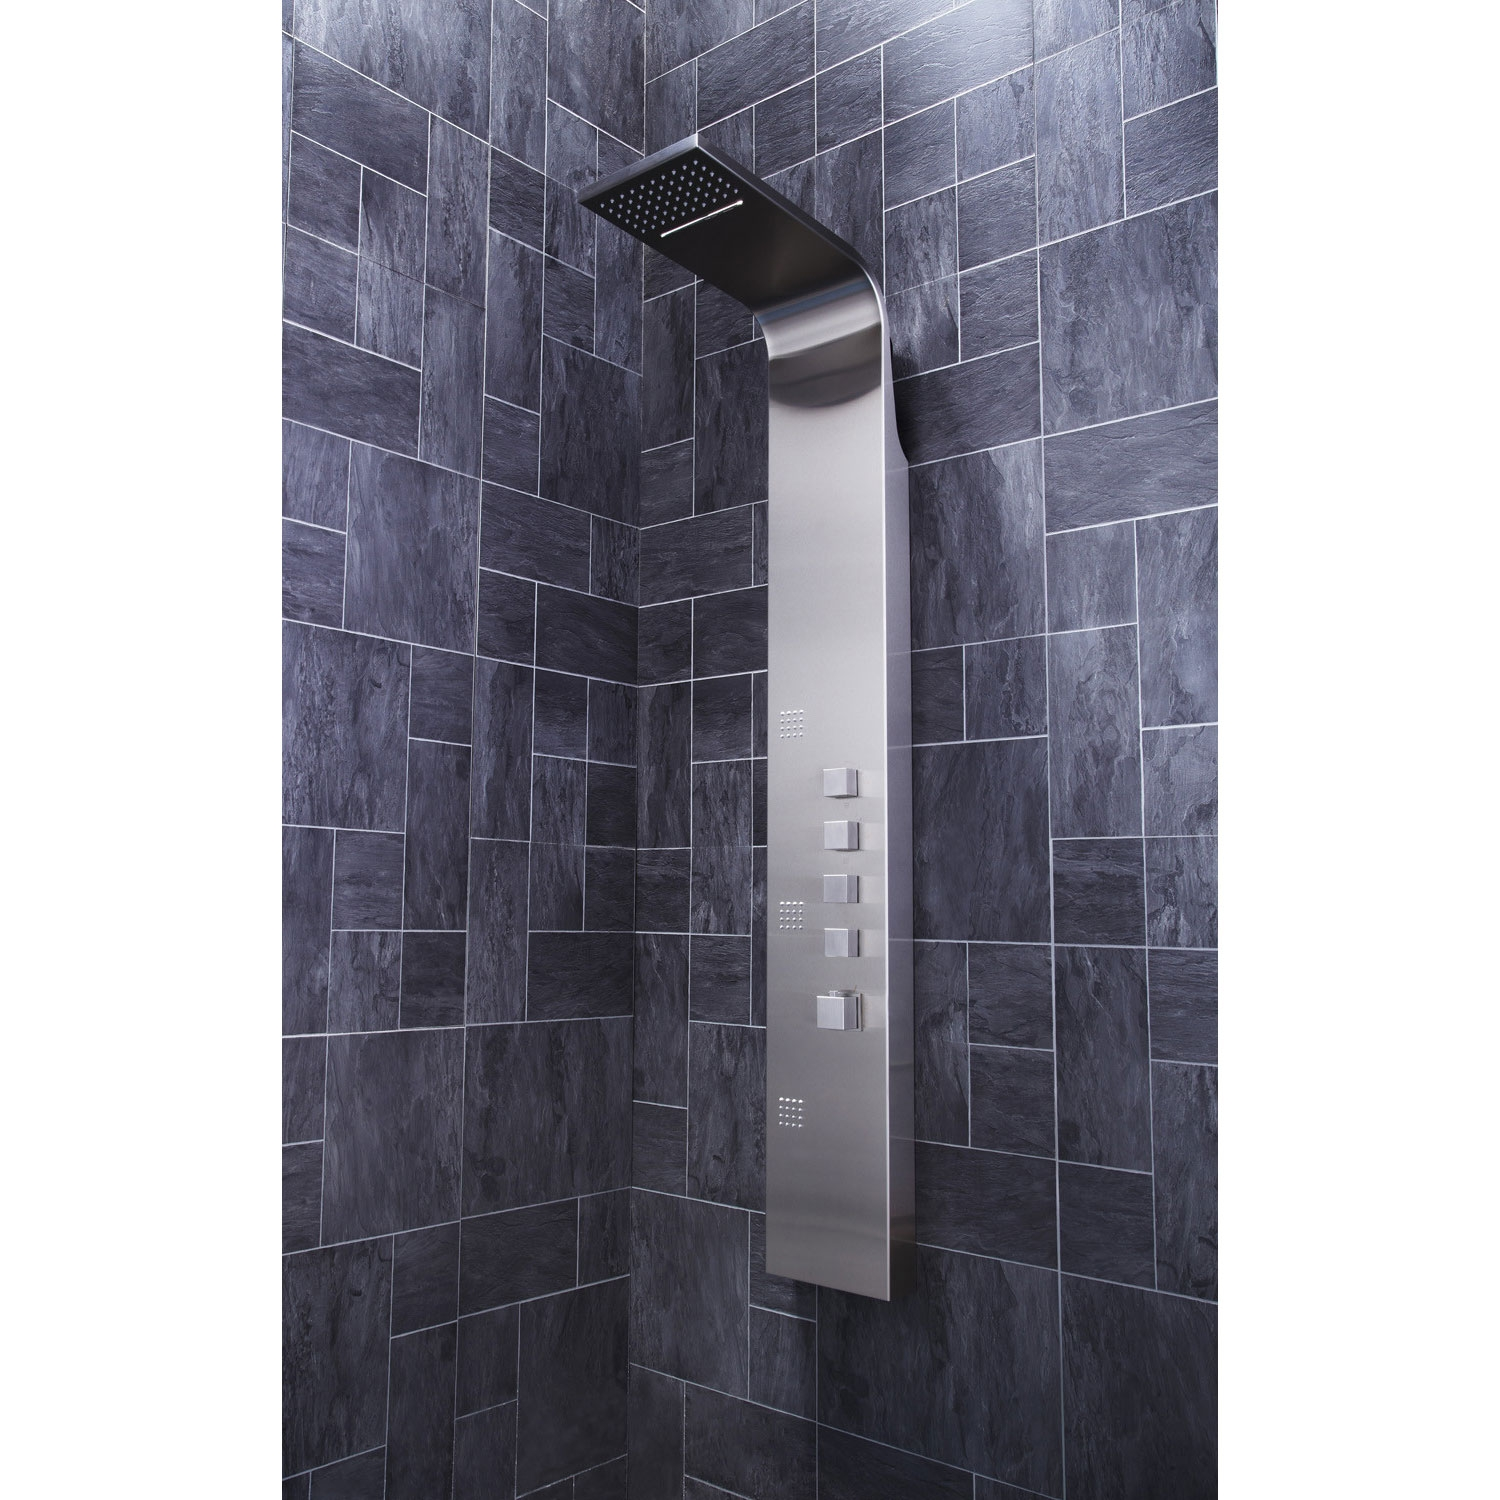 Verona Losan Thermostatic Shower Panel 3 Built-in Body Jets with Shower Hand